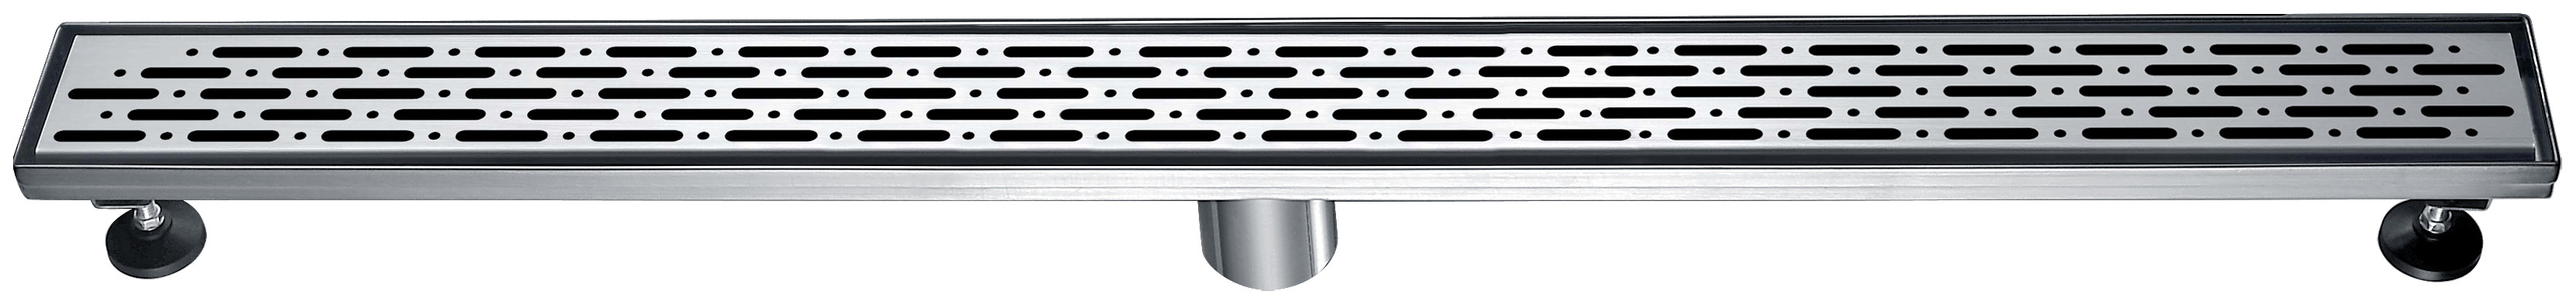 "Dawn® LRO360304 Rio Orinoco River Series Linear Shower Drain 36""L In Polished Satin"